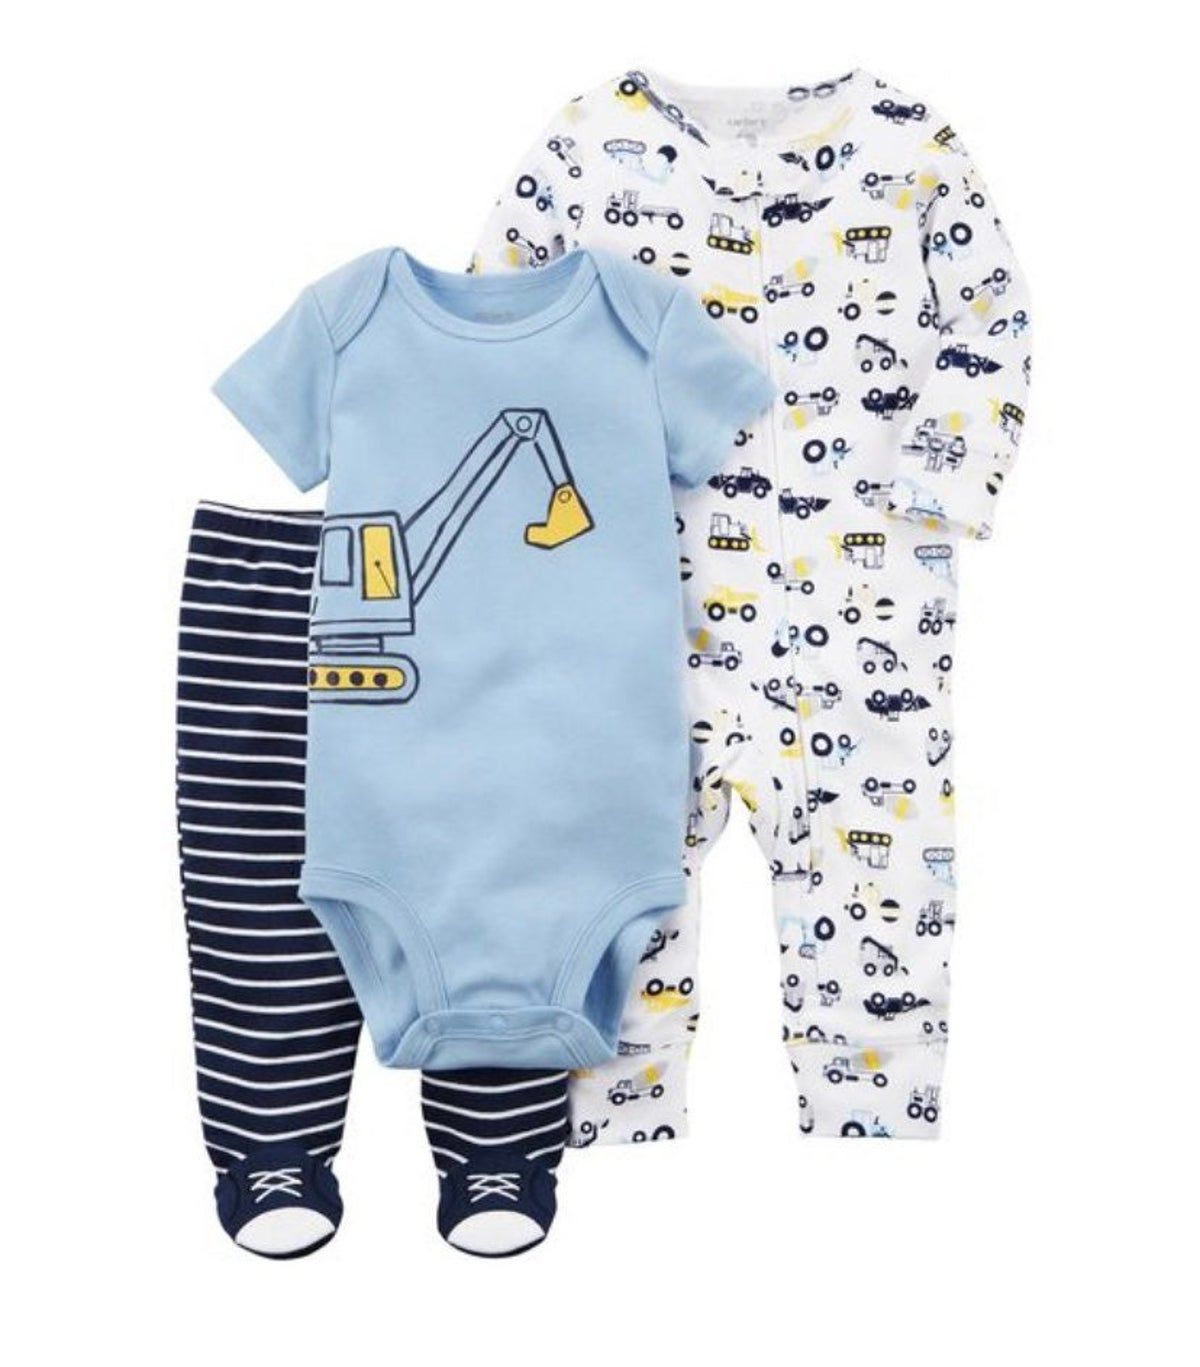 Outfit Baby Girl Pants Baby Boy Outfits Baby Boy Sets